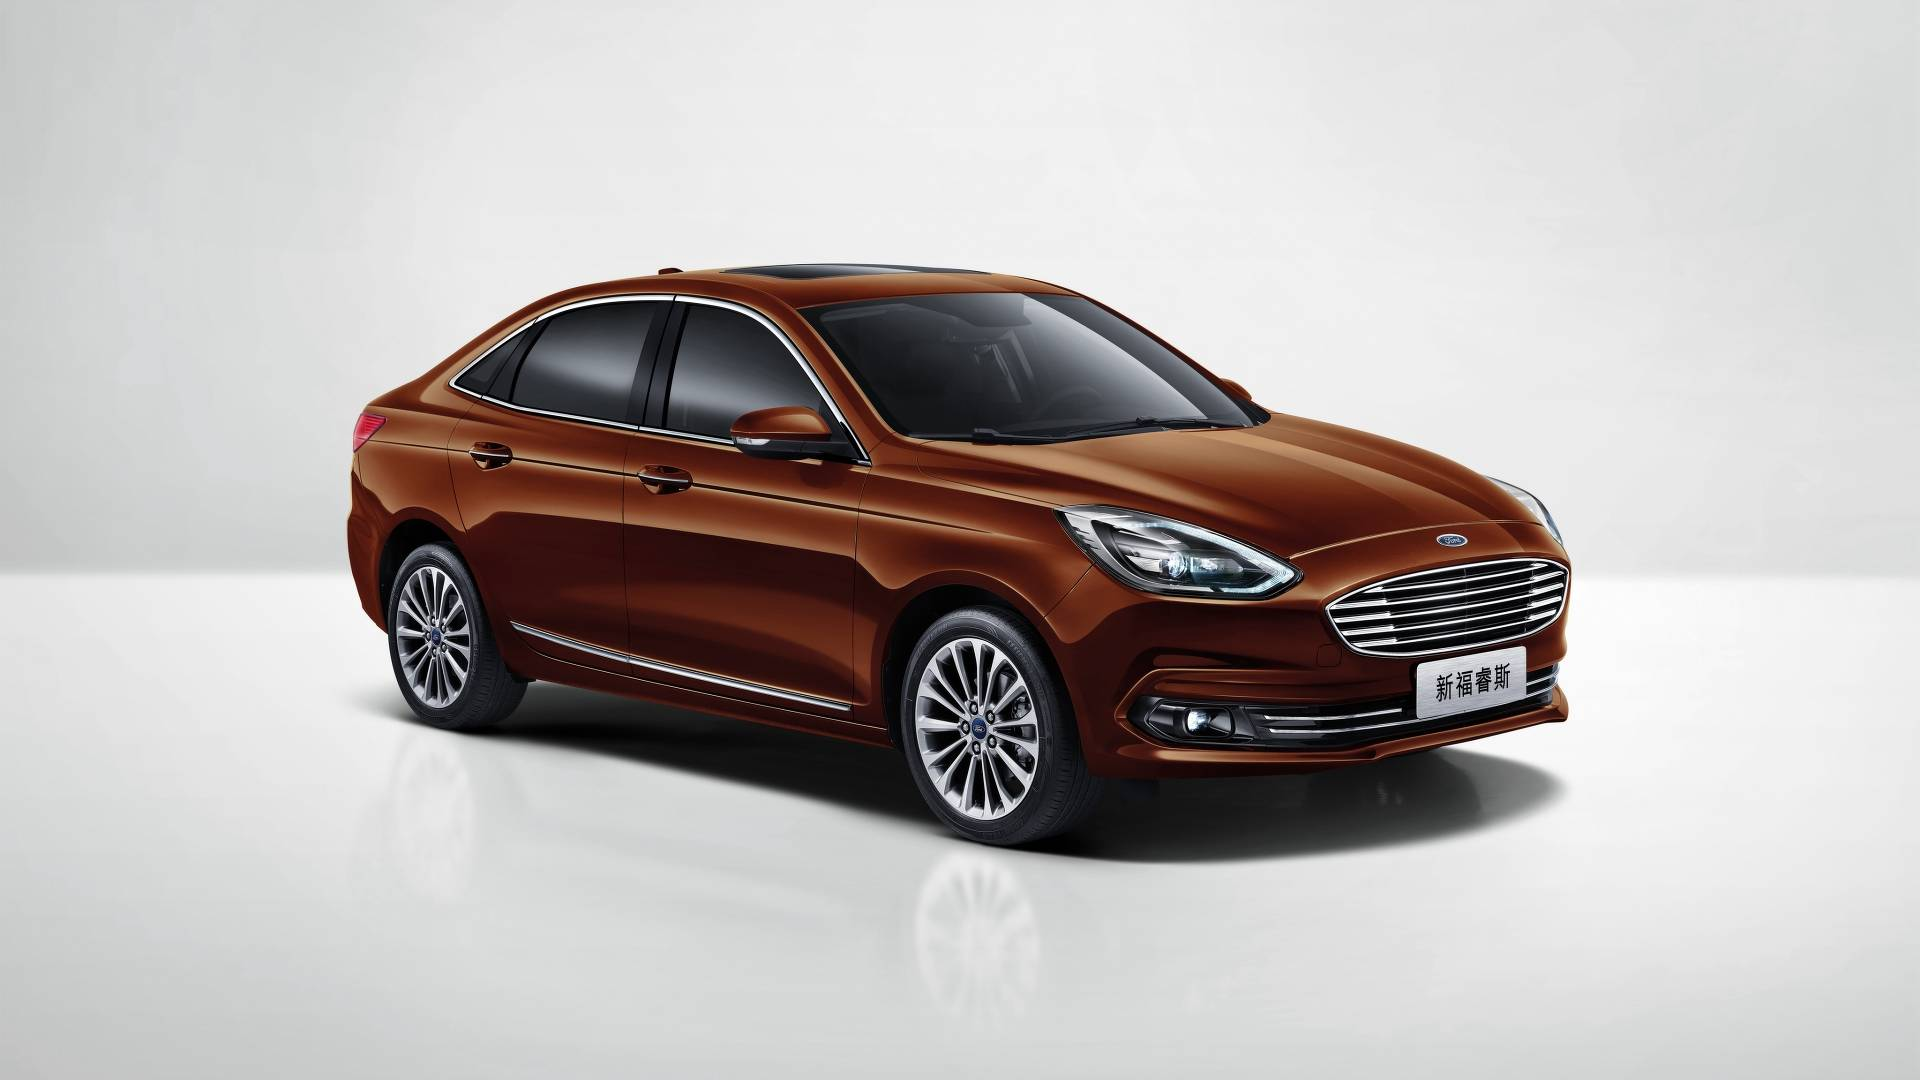 ford escort facelifted just in time for auto china 2018 autoevolution. Black Bedroom Furniture Sets. Home Design Ideas